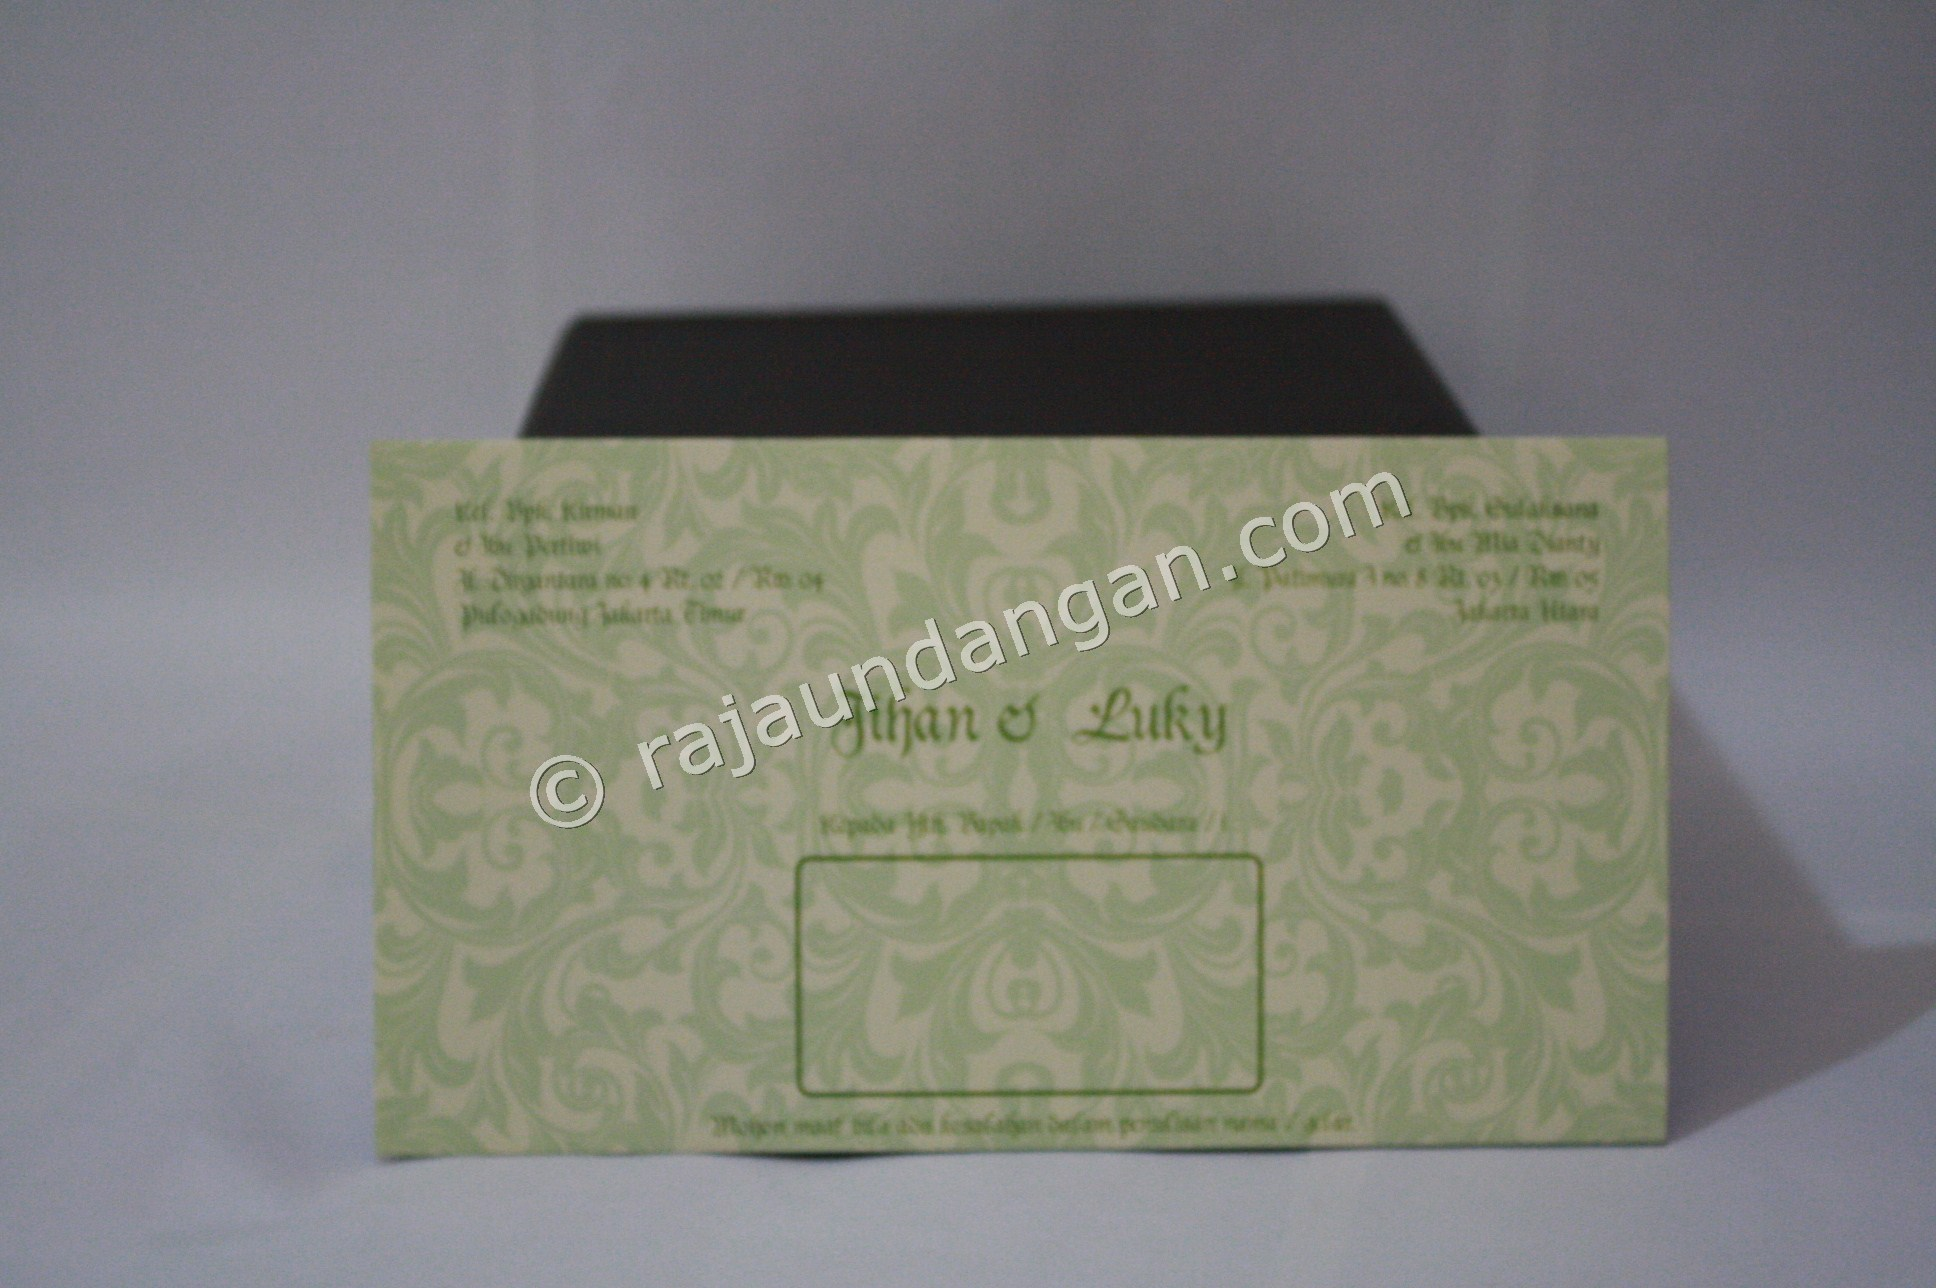 Undangan Pernikahan Softcover Jihan dan Luky 2 - Pesan Wedding Invitations Simple di Ploso